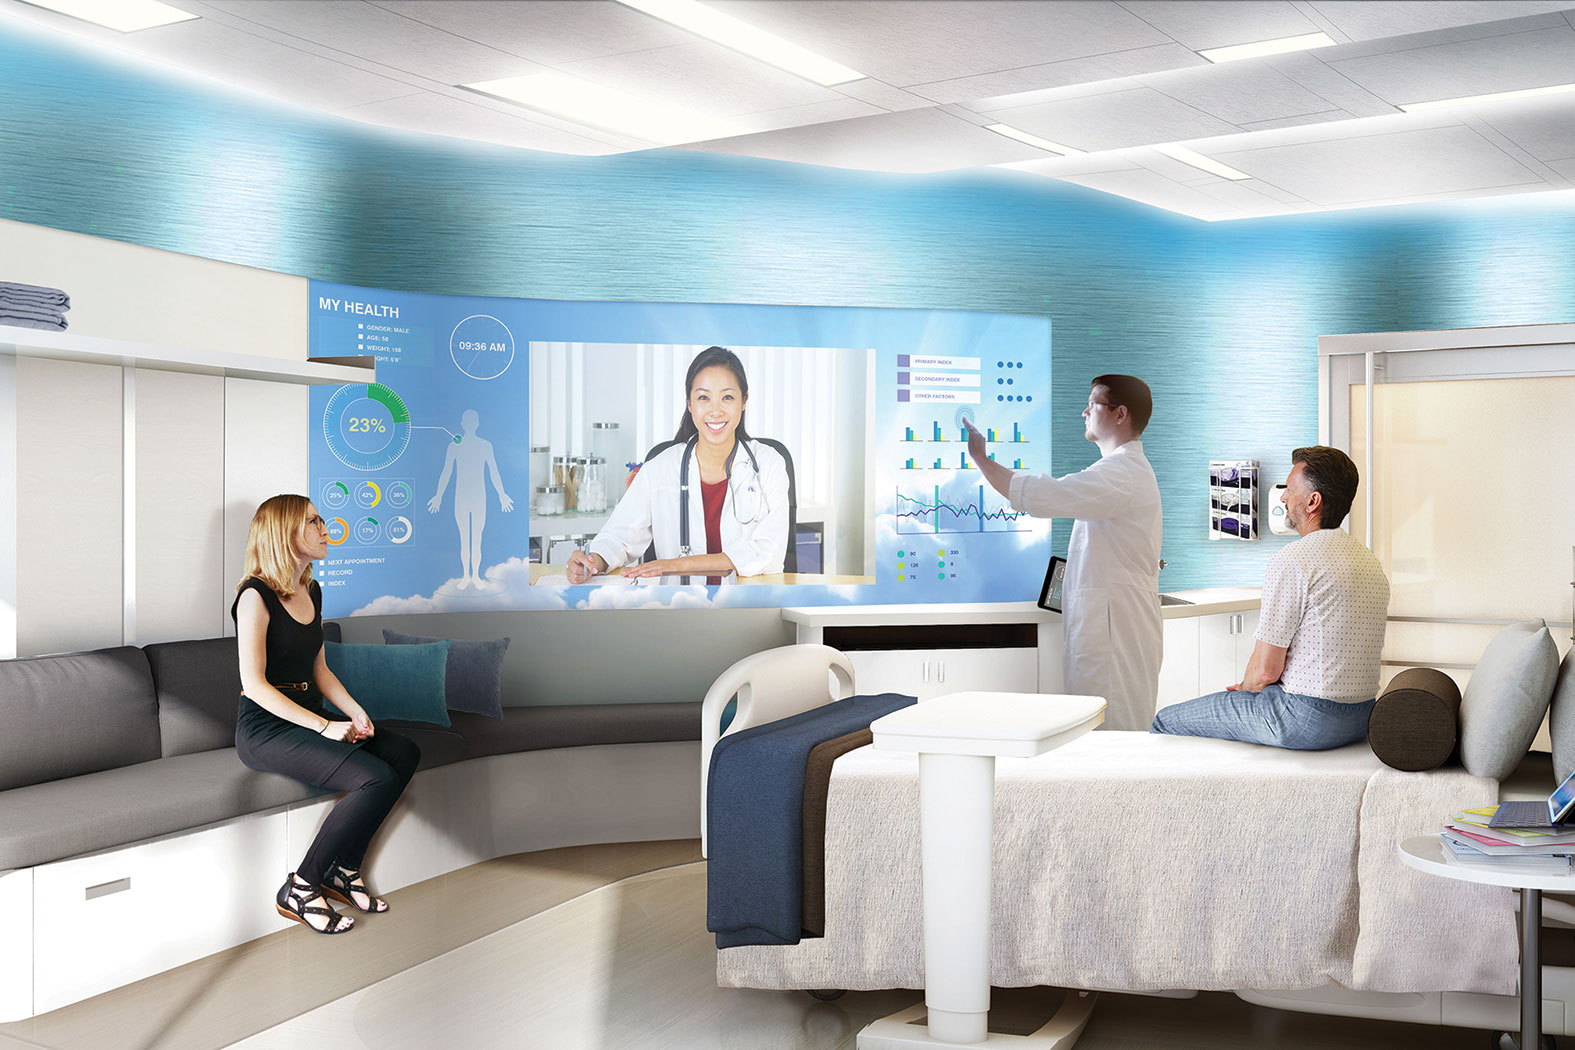 Concept Patient Room Configured For A Clinical Consult